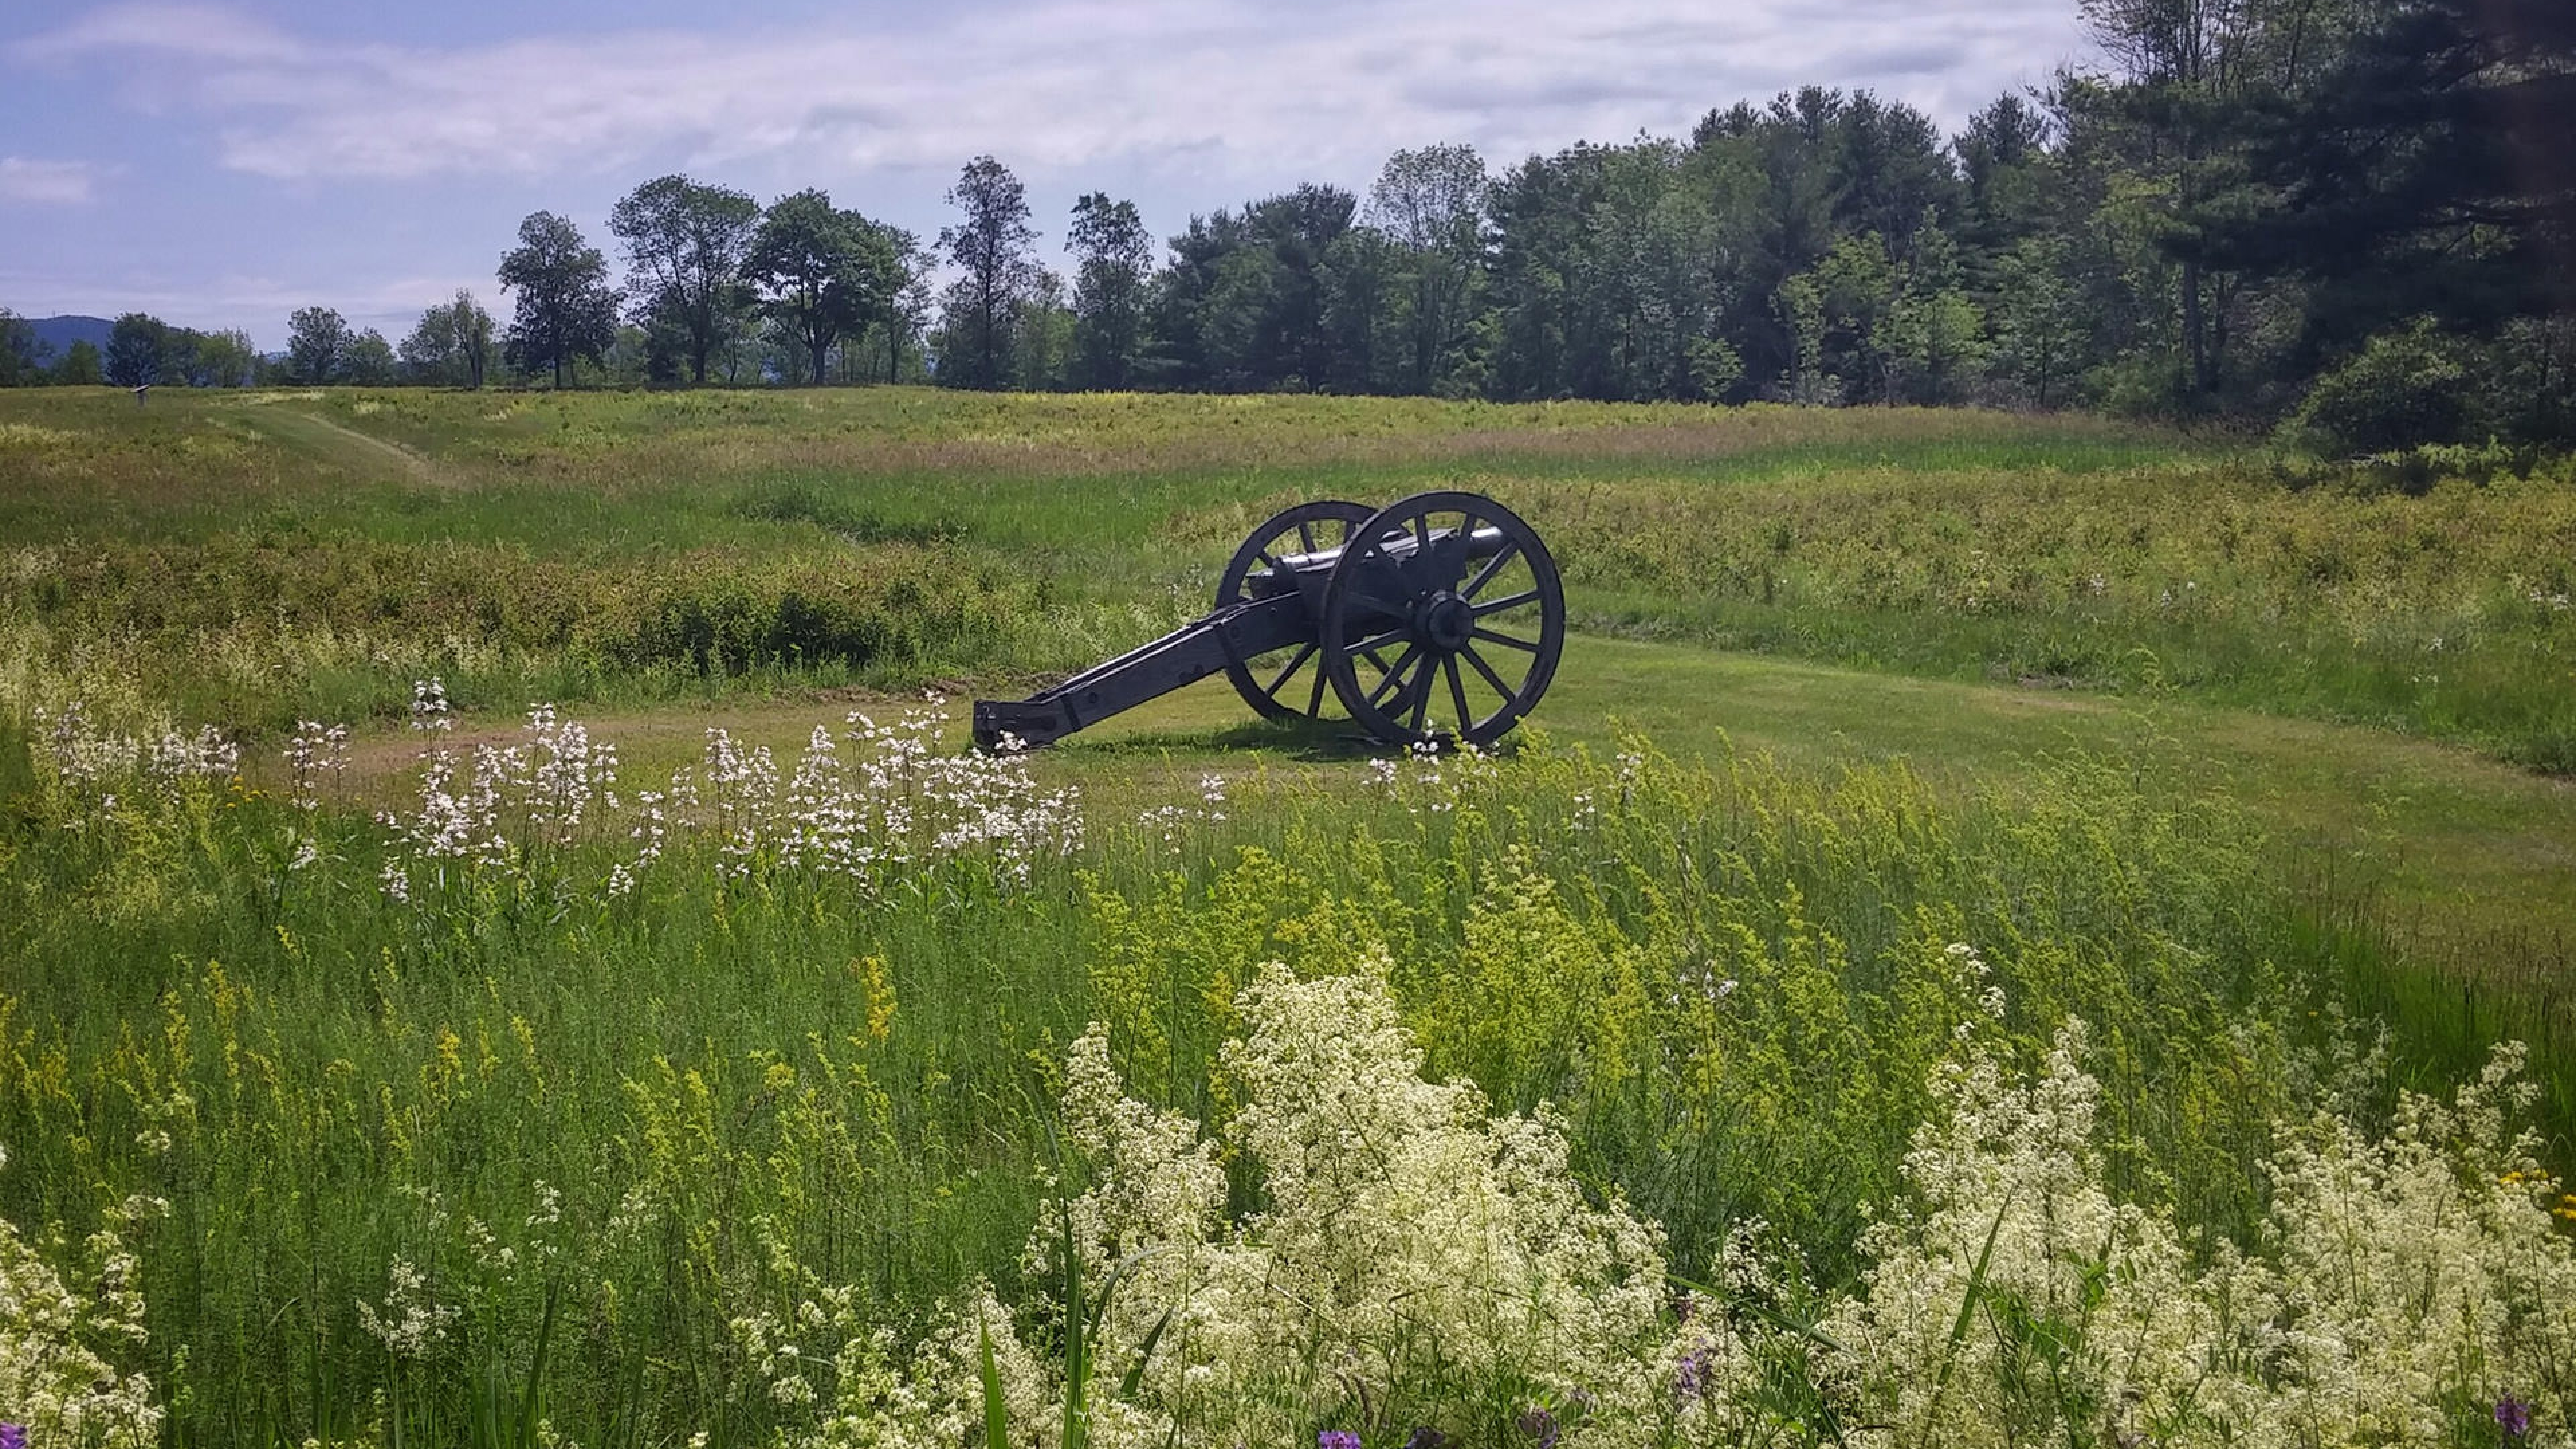 cannon in middle of field with wildflowers